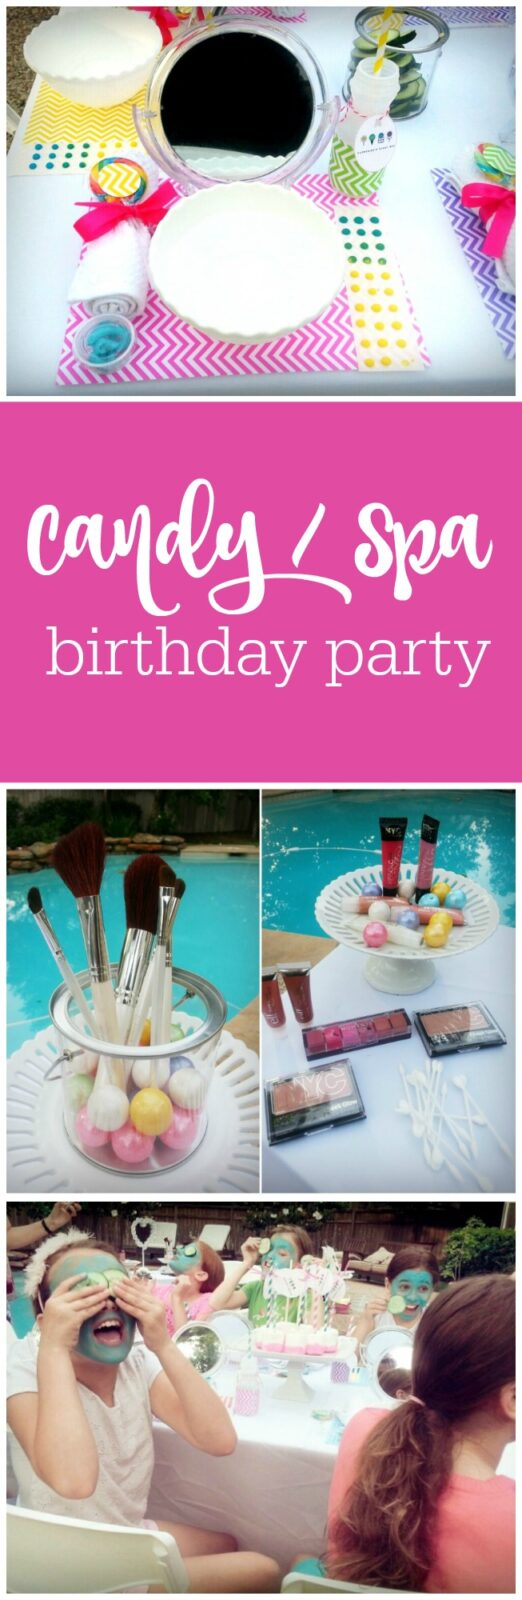 Dylan's Candy Bar Spa 10th birthday party by Glamour Avenue Parties featured on The Party Teacher